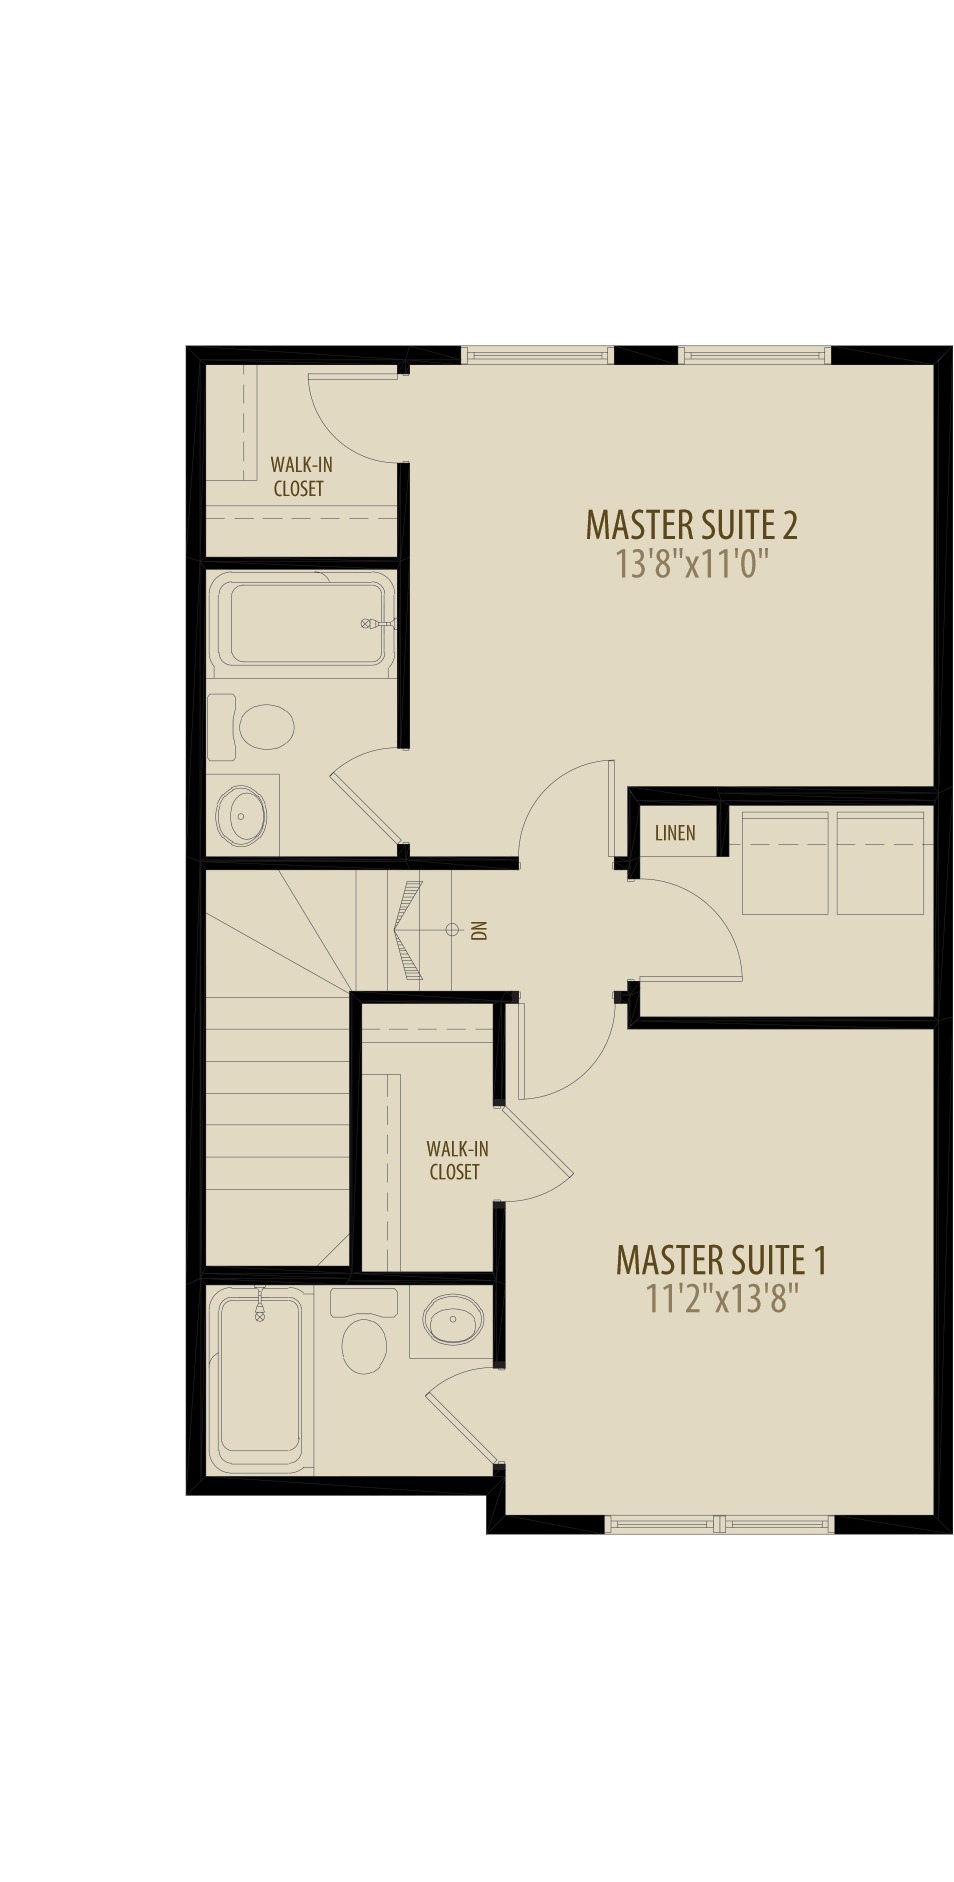 Dual Master Suites With Laundry Adds 20Sq Ft